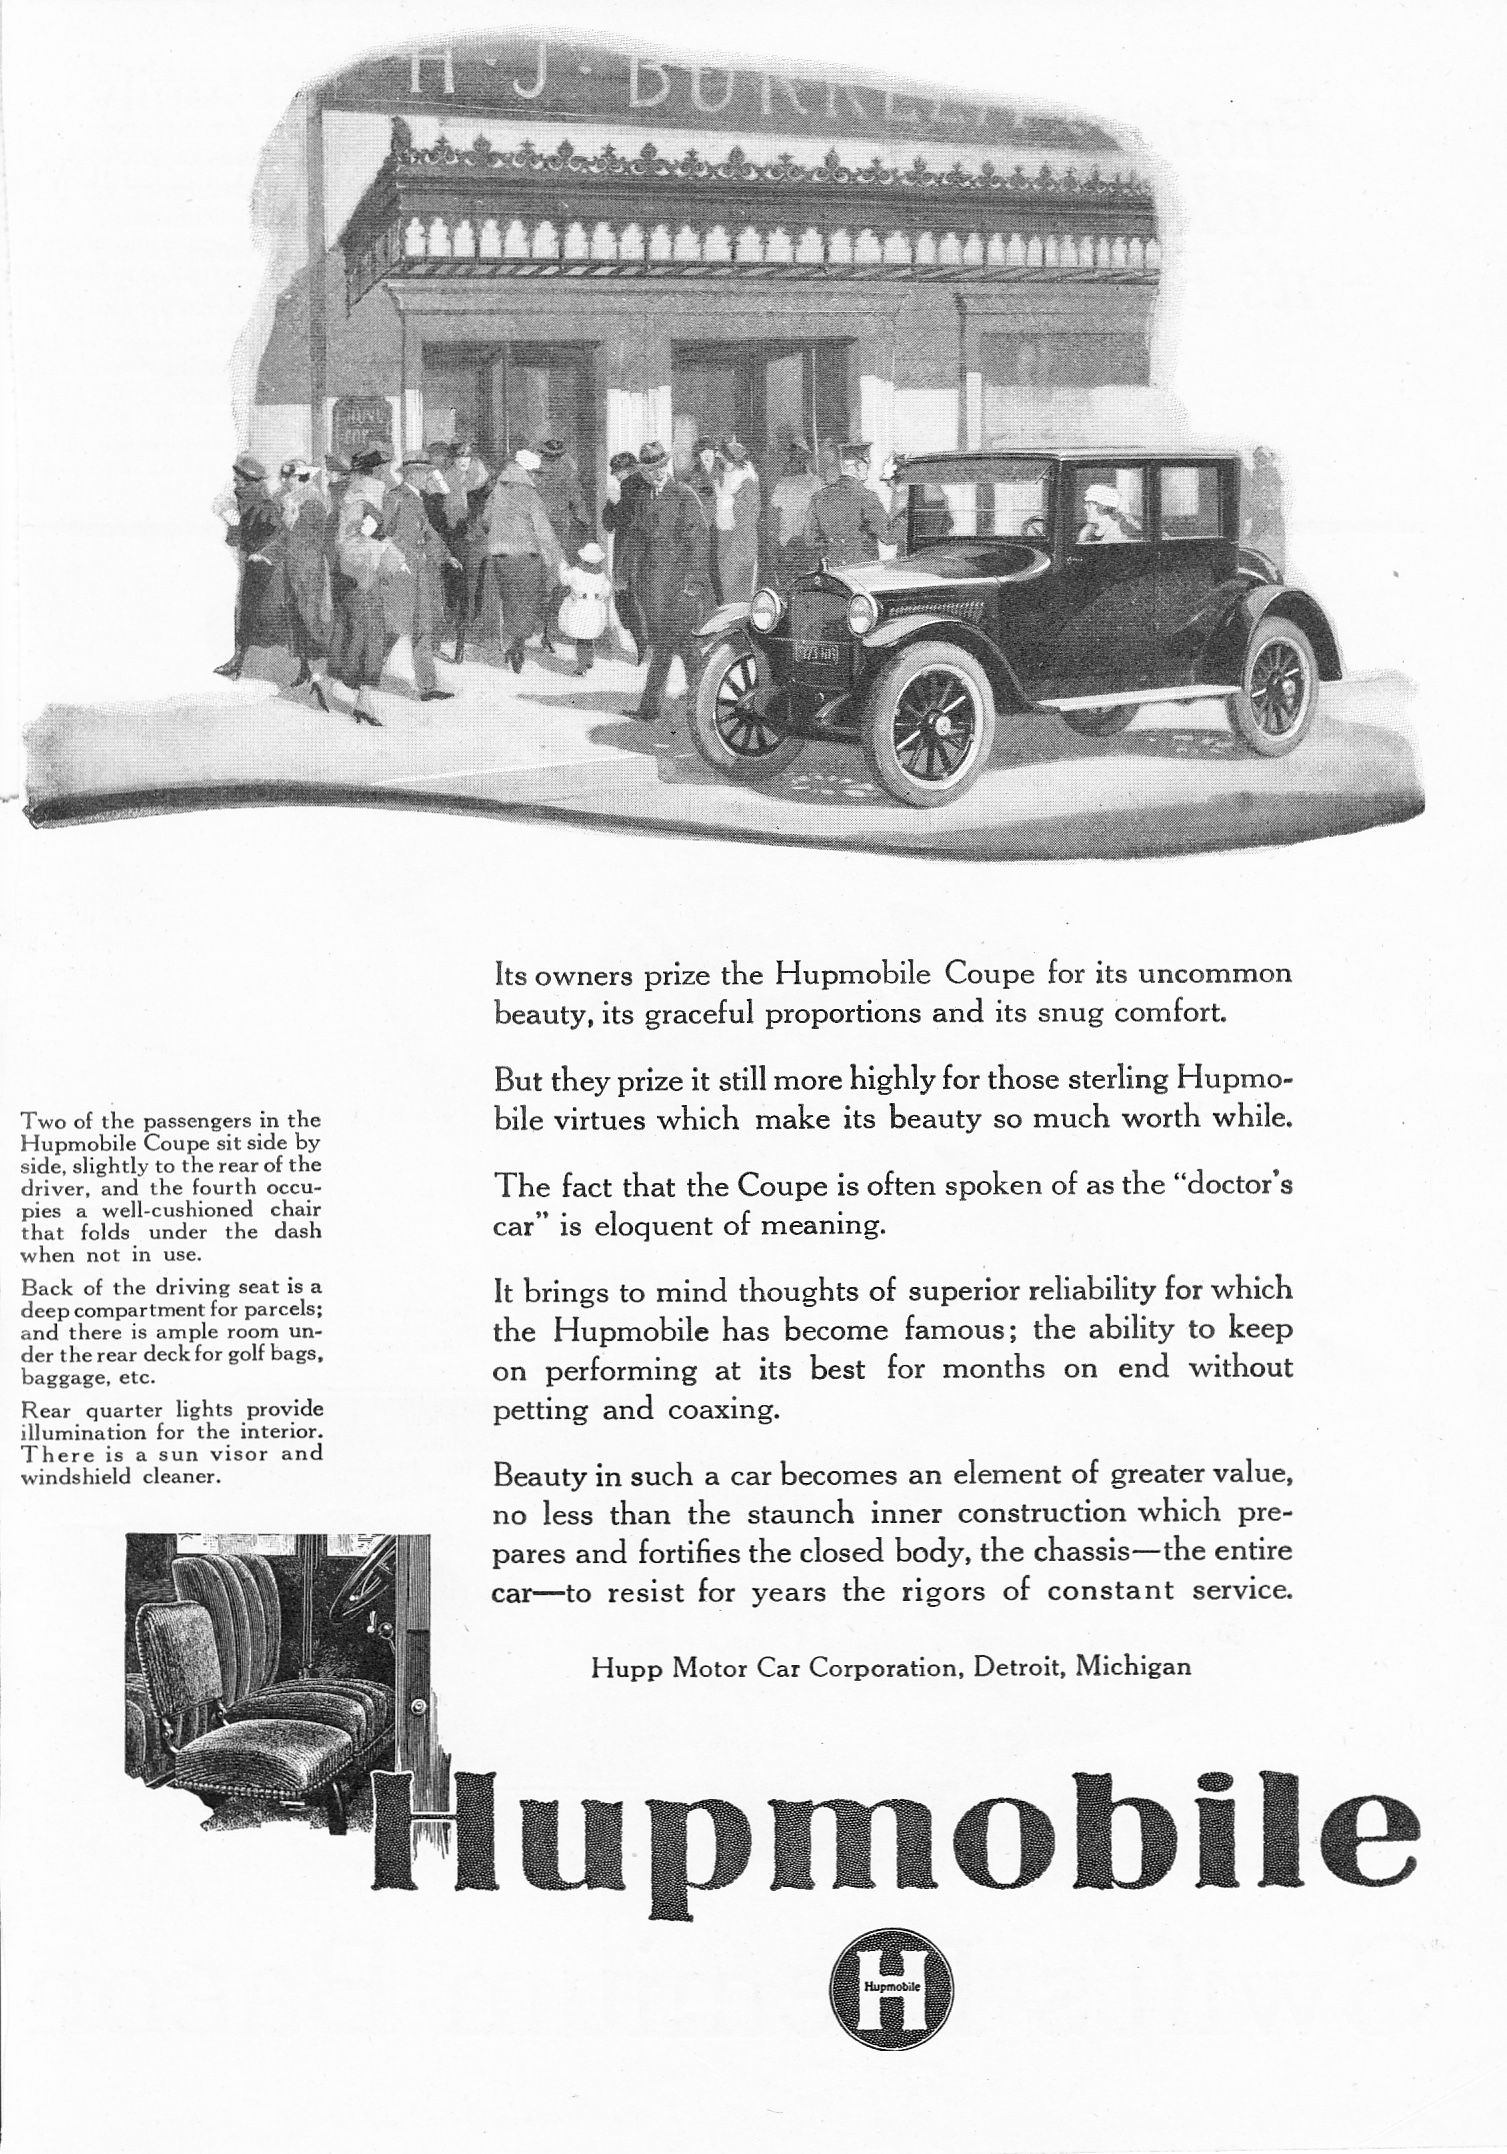 1923 Hupmobile Hupp Motor Car Corporation Autos 1920s